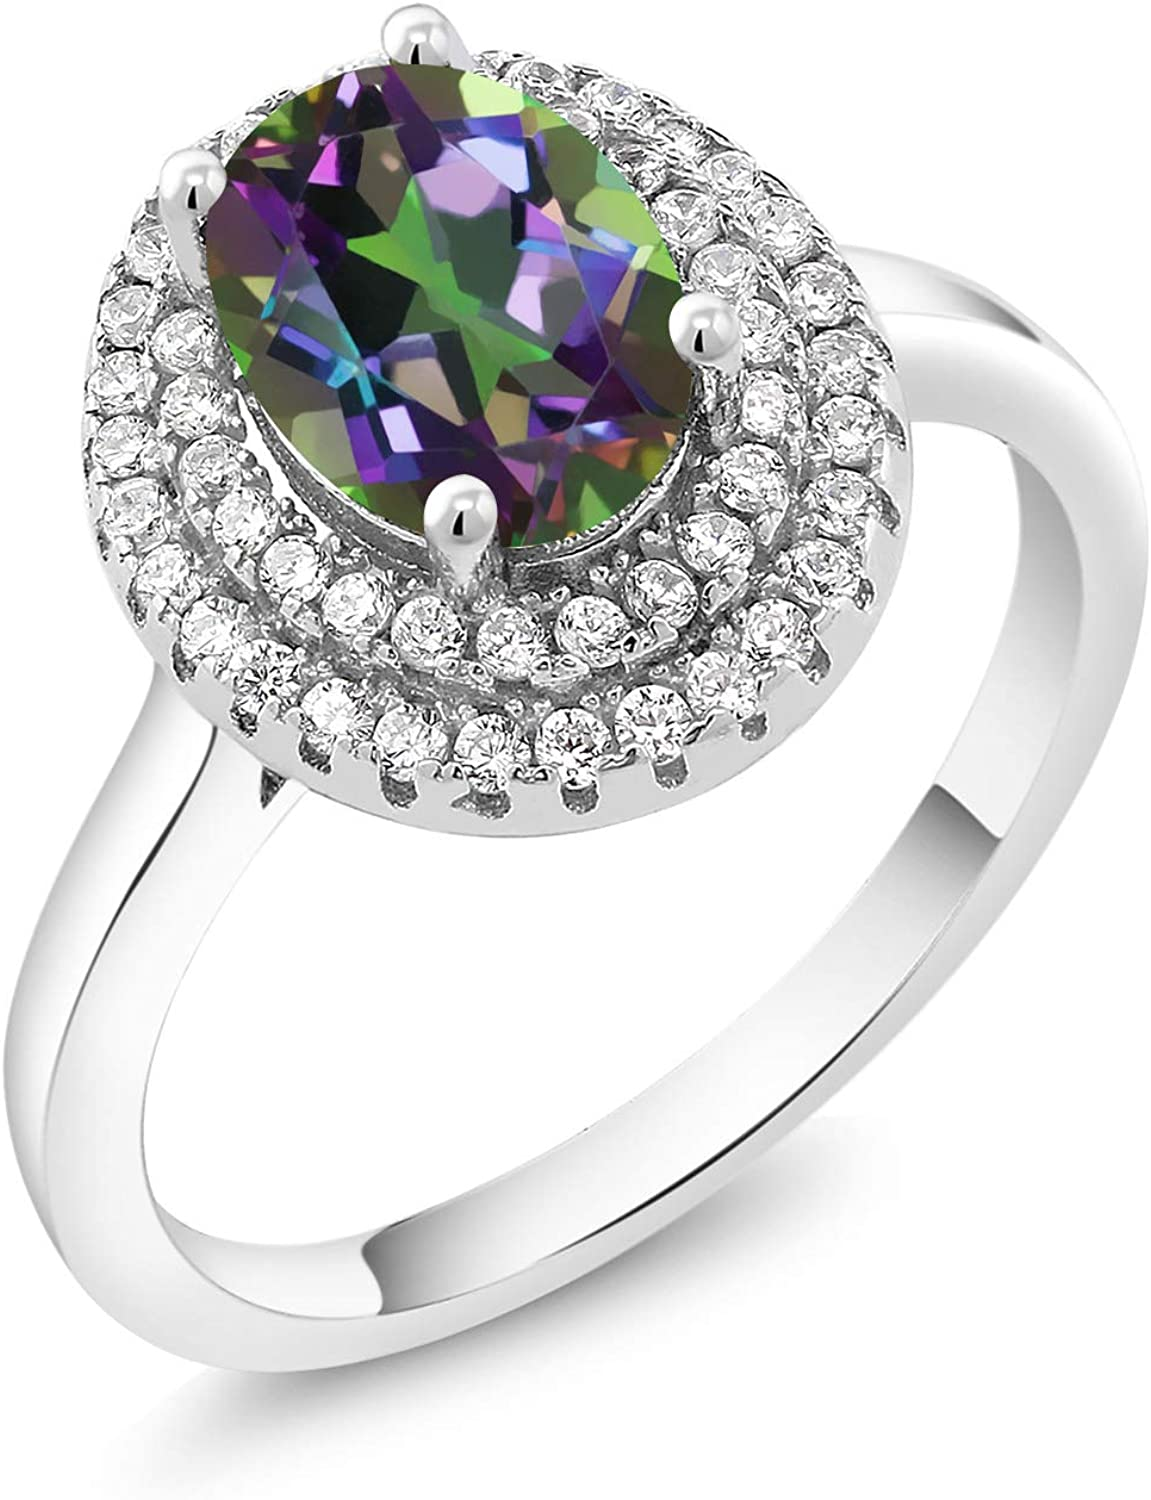 Gem Stone King 2.78 Ct Oval specialty shop Mystic Green 925 Silv Sterling Topaz Max 63% OFF